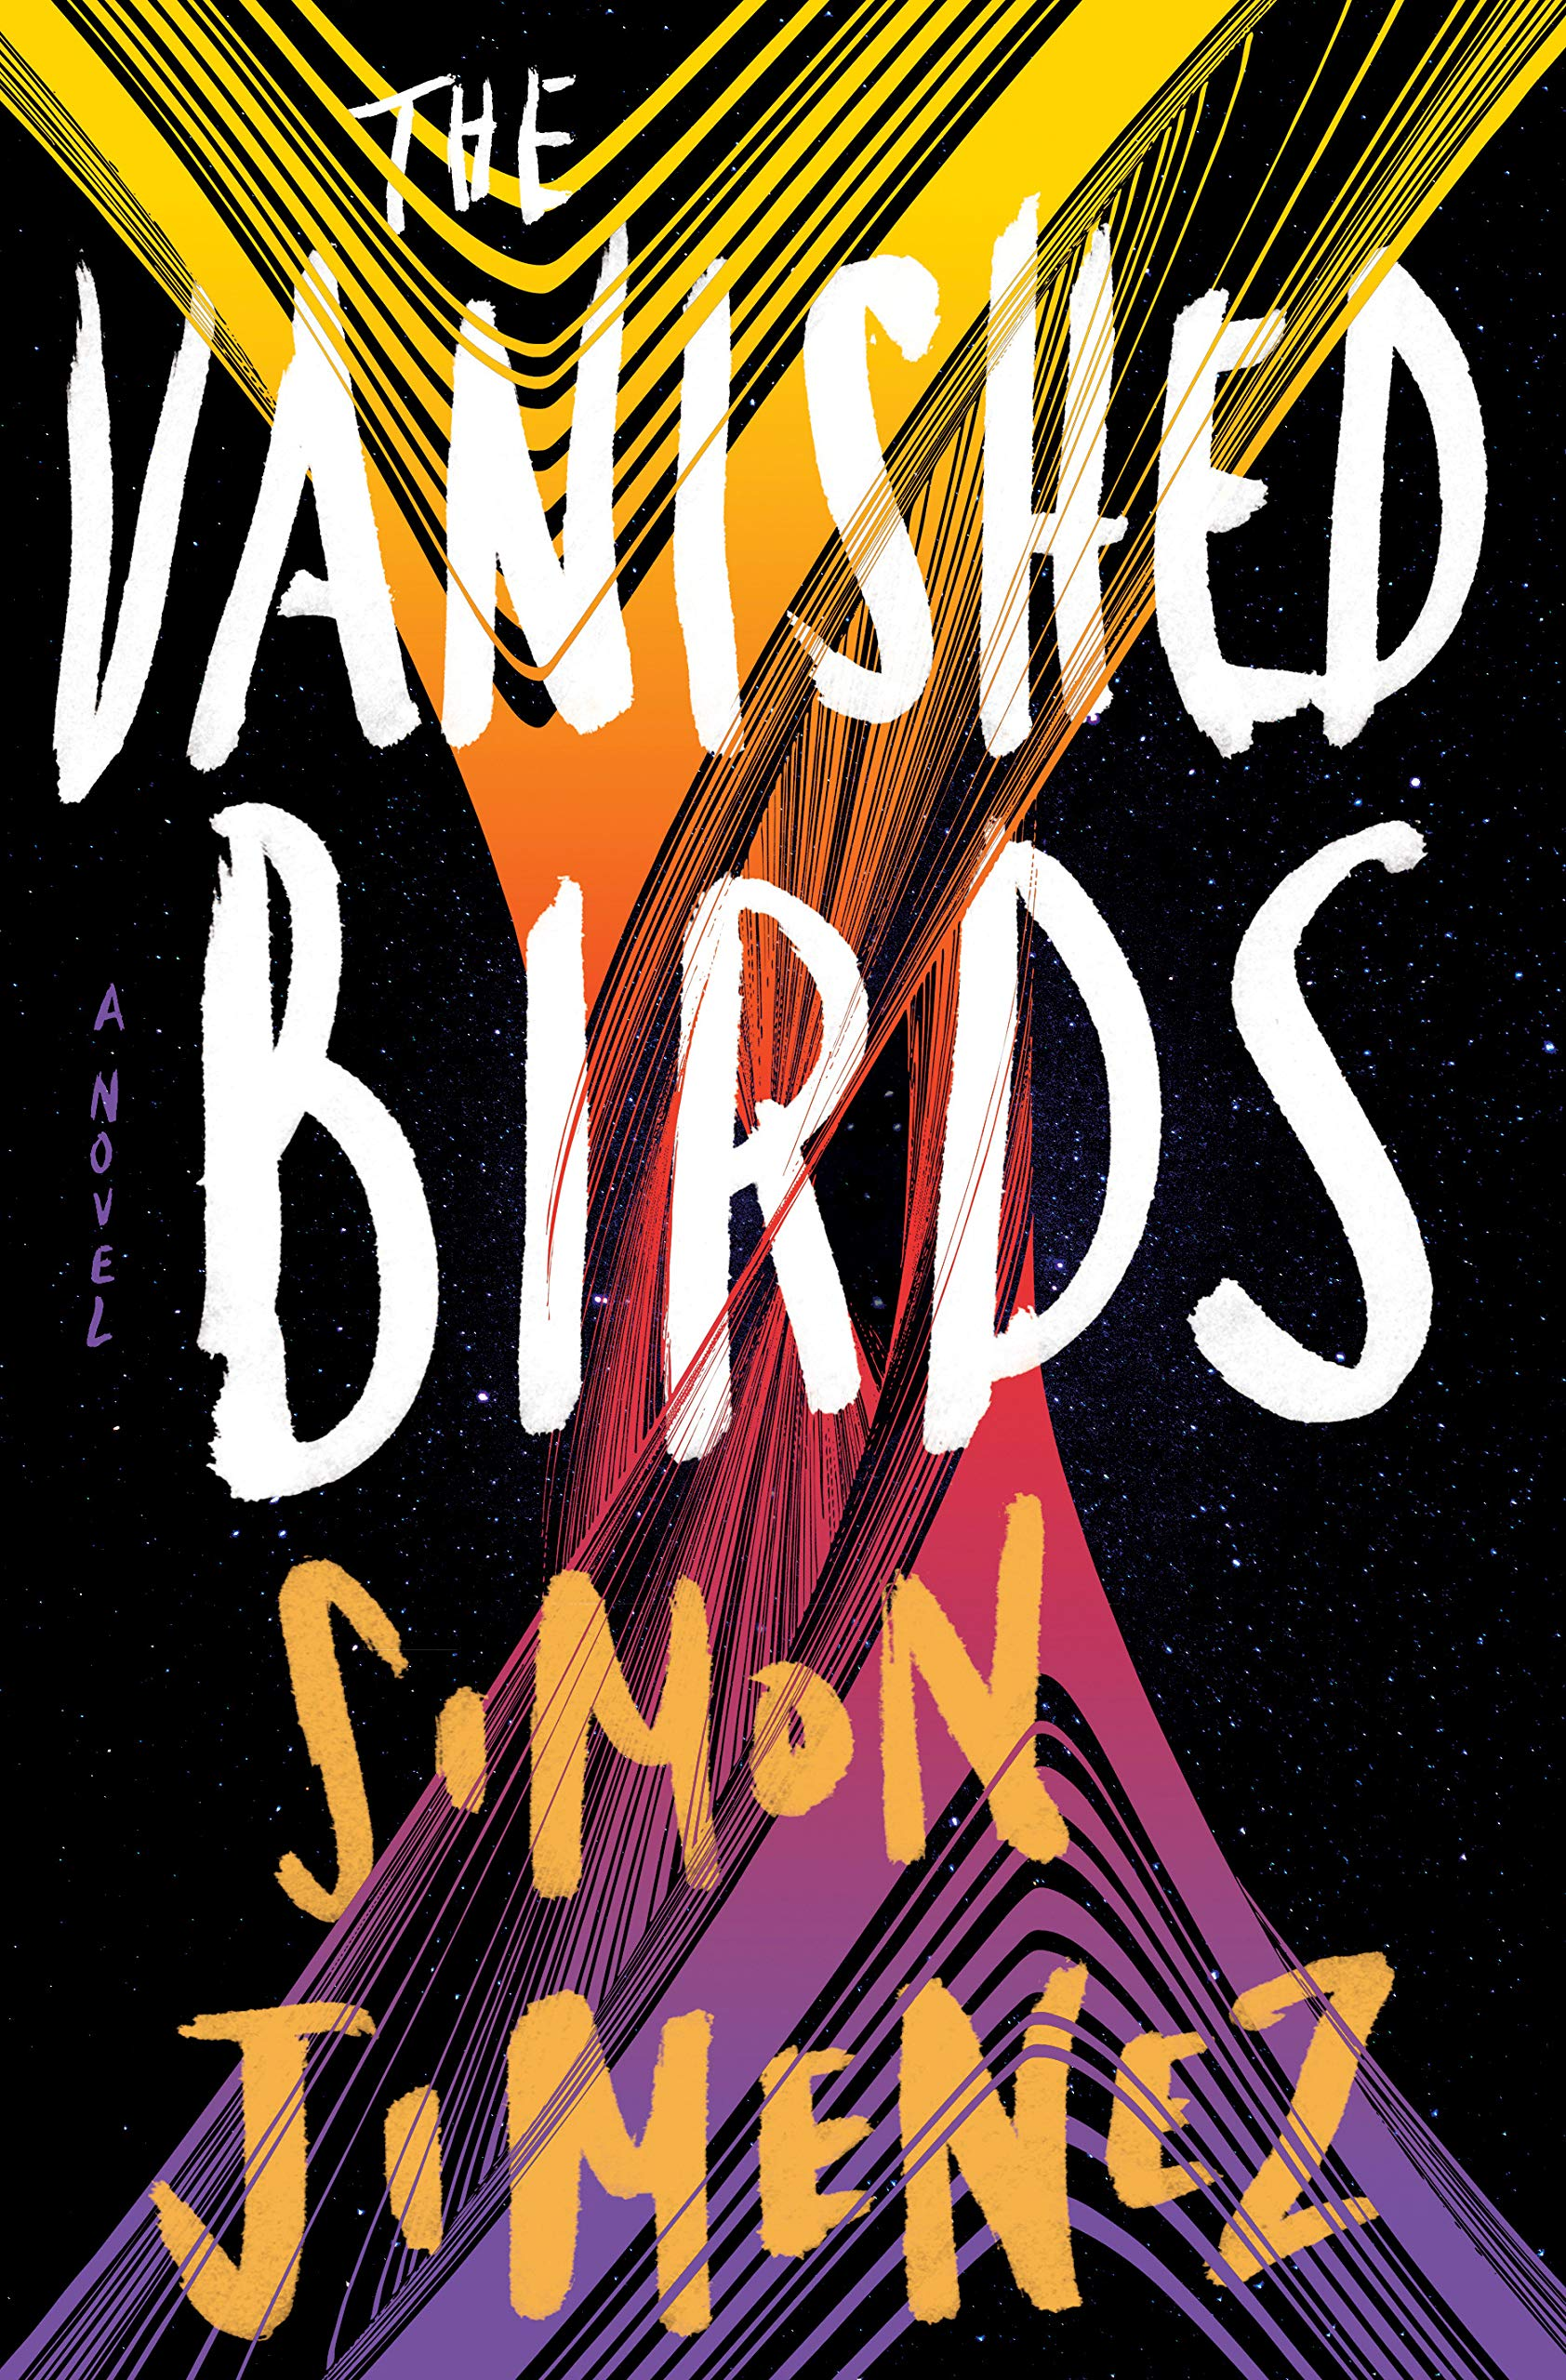 The Vanished Birds 2020 book releases